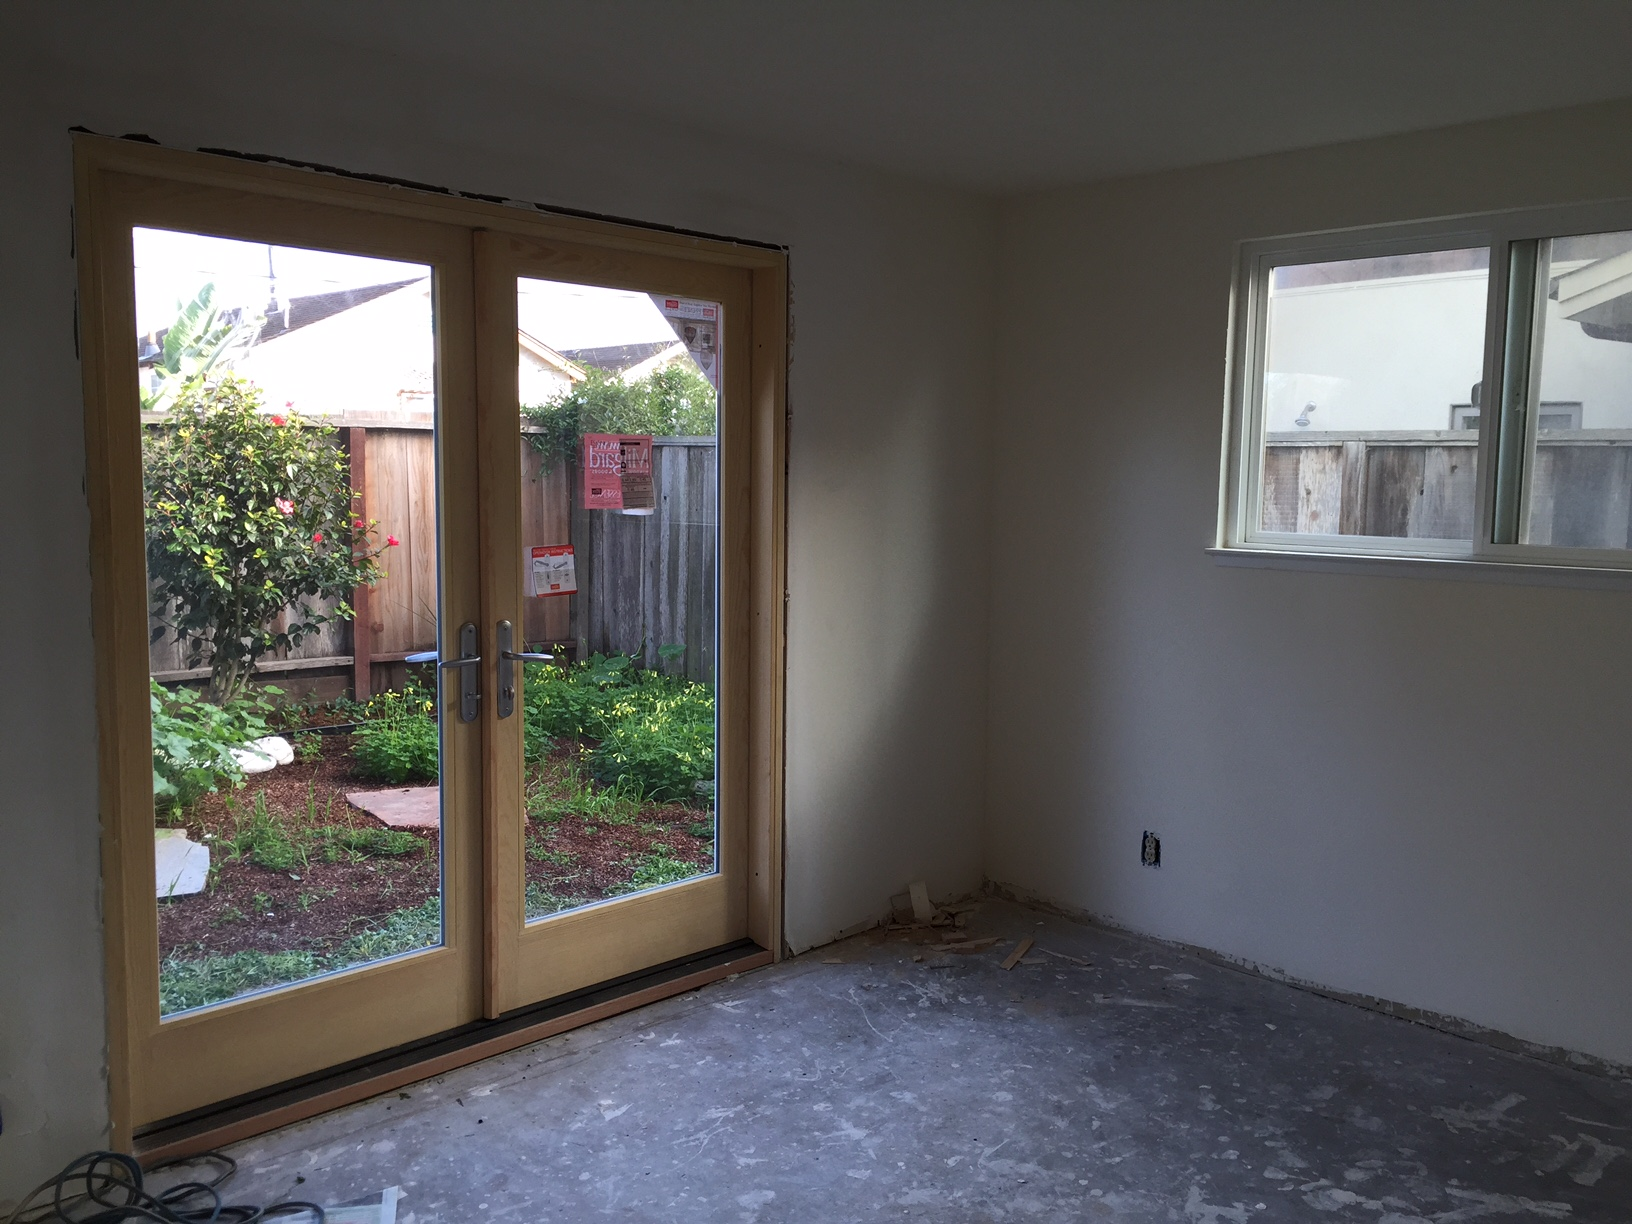 New Milgard french doors installed in the downstairs bedroom and the carpet ripped out.